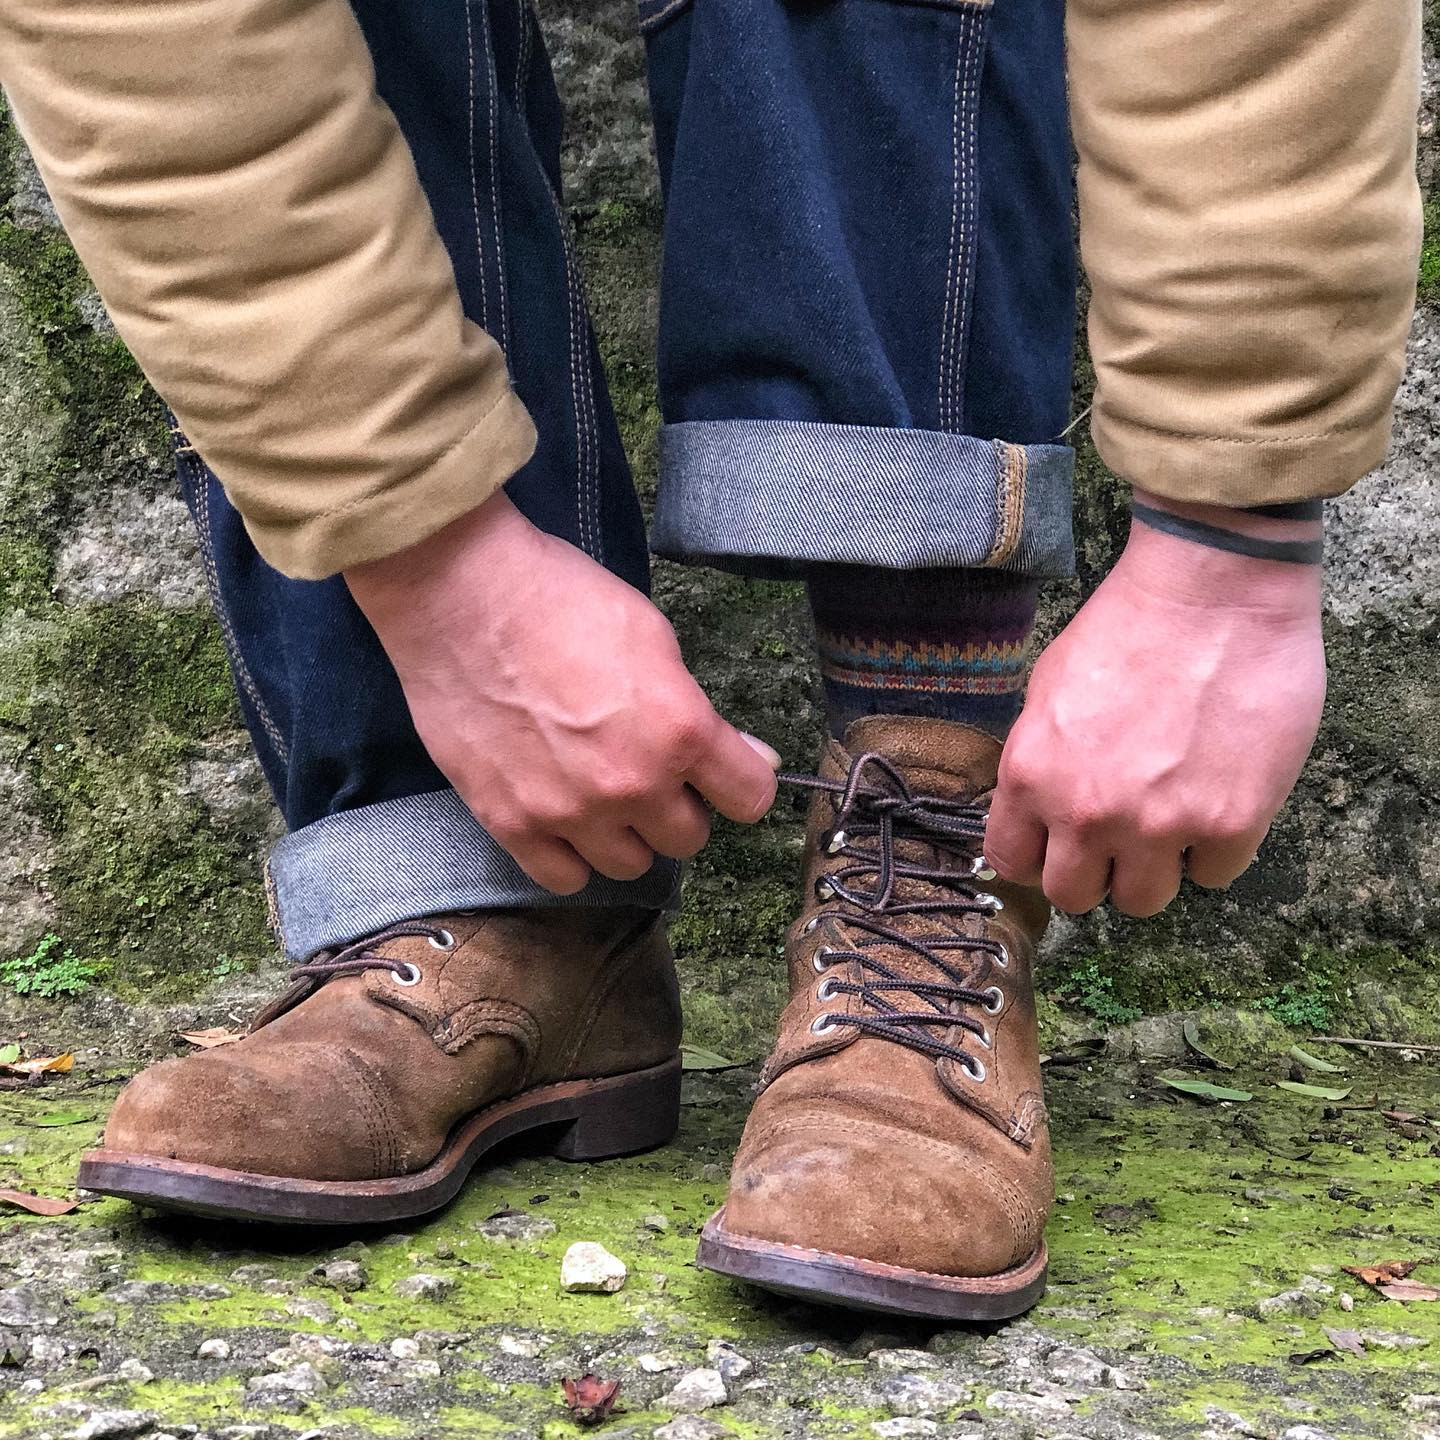 Boots Rugged Style Ideas for Men -kindsupply_co